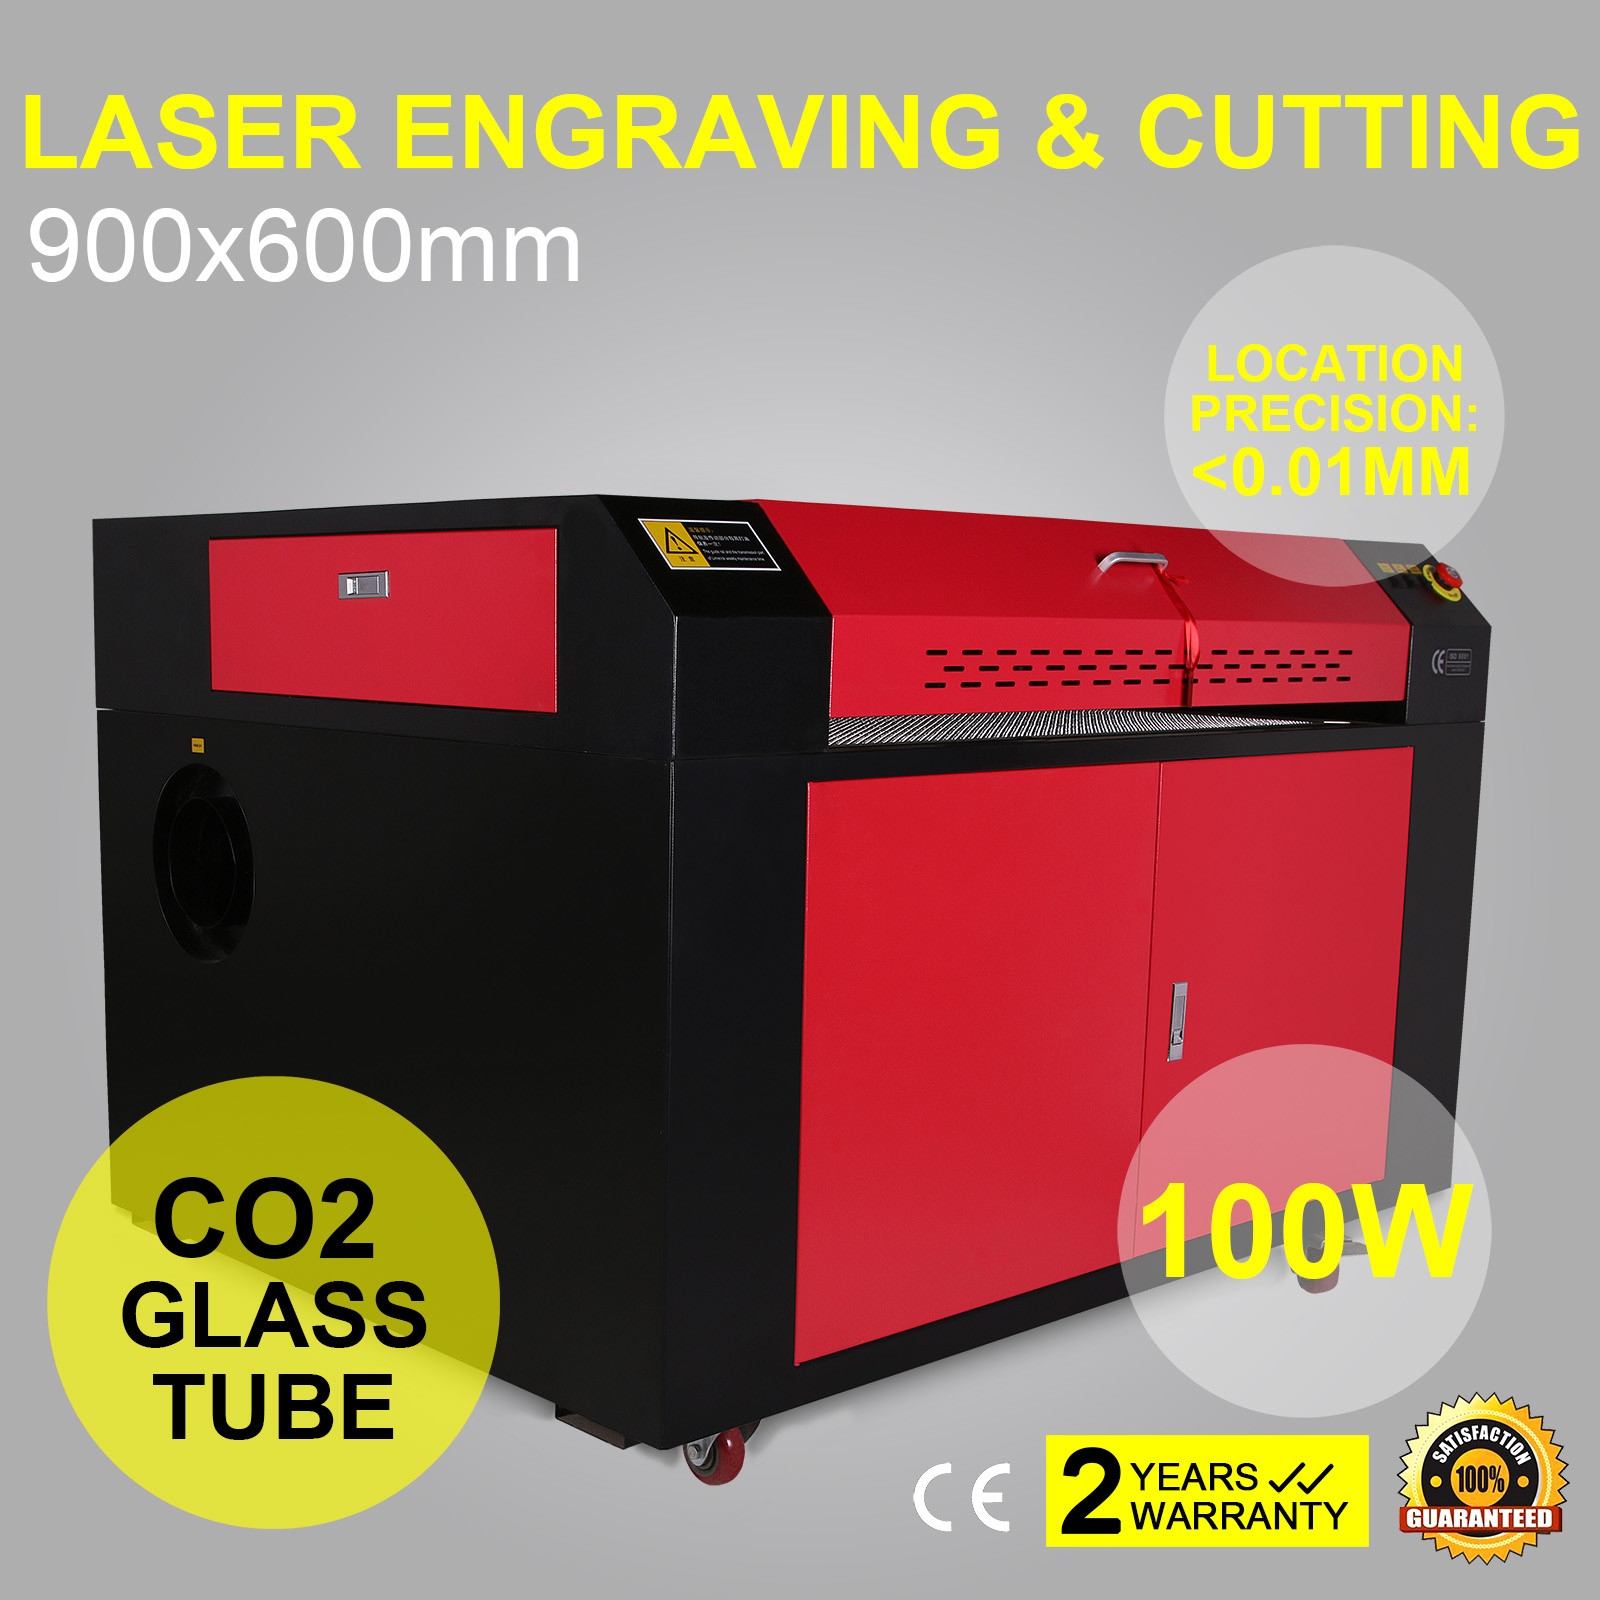 CO2-Usb-Laser-Engraving-Cutting-Machine-Engraver-Cutter-Air-Assist-Carving thumbnail 59